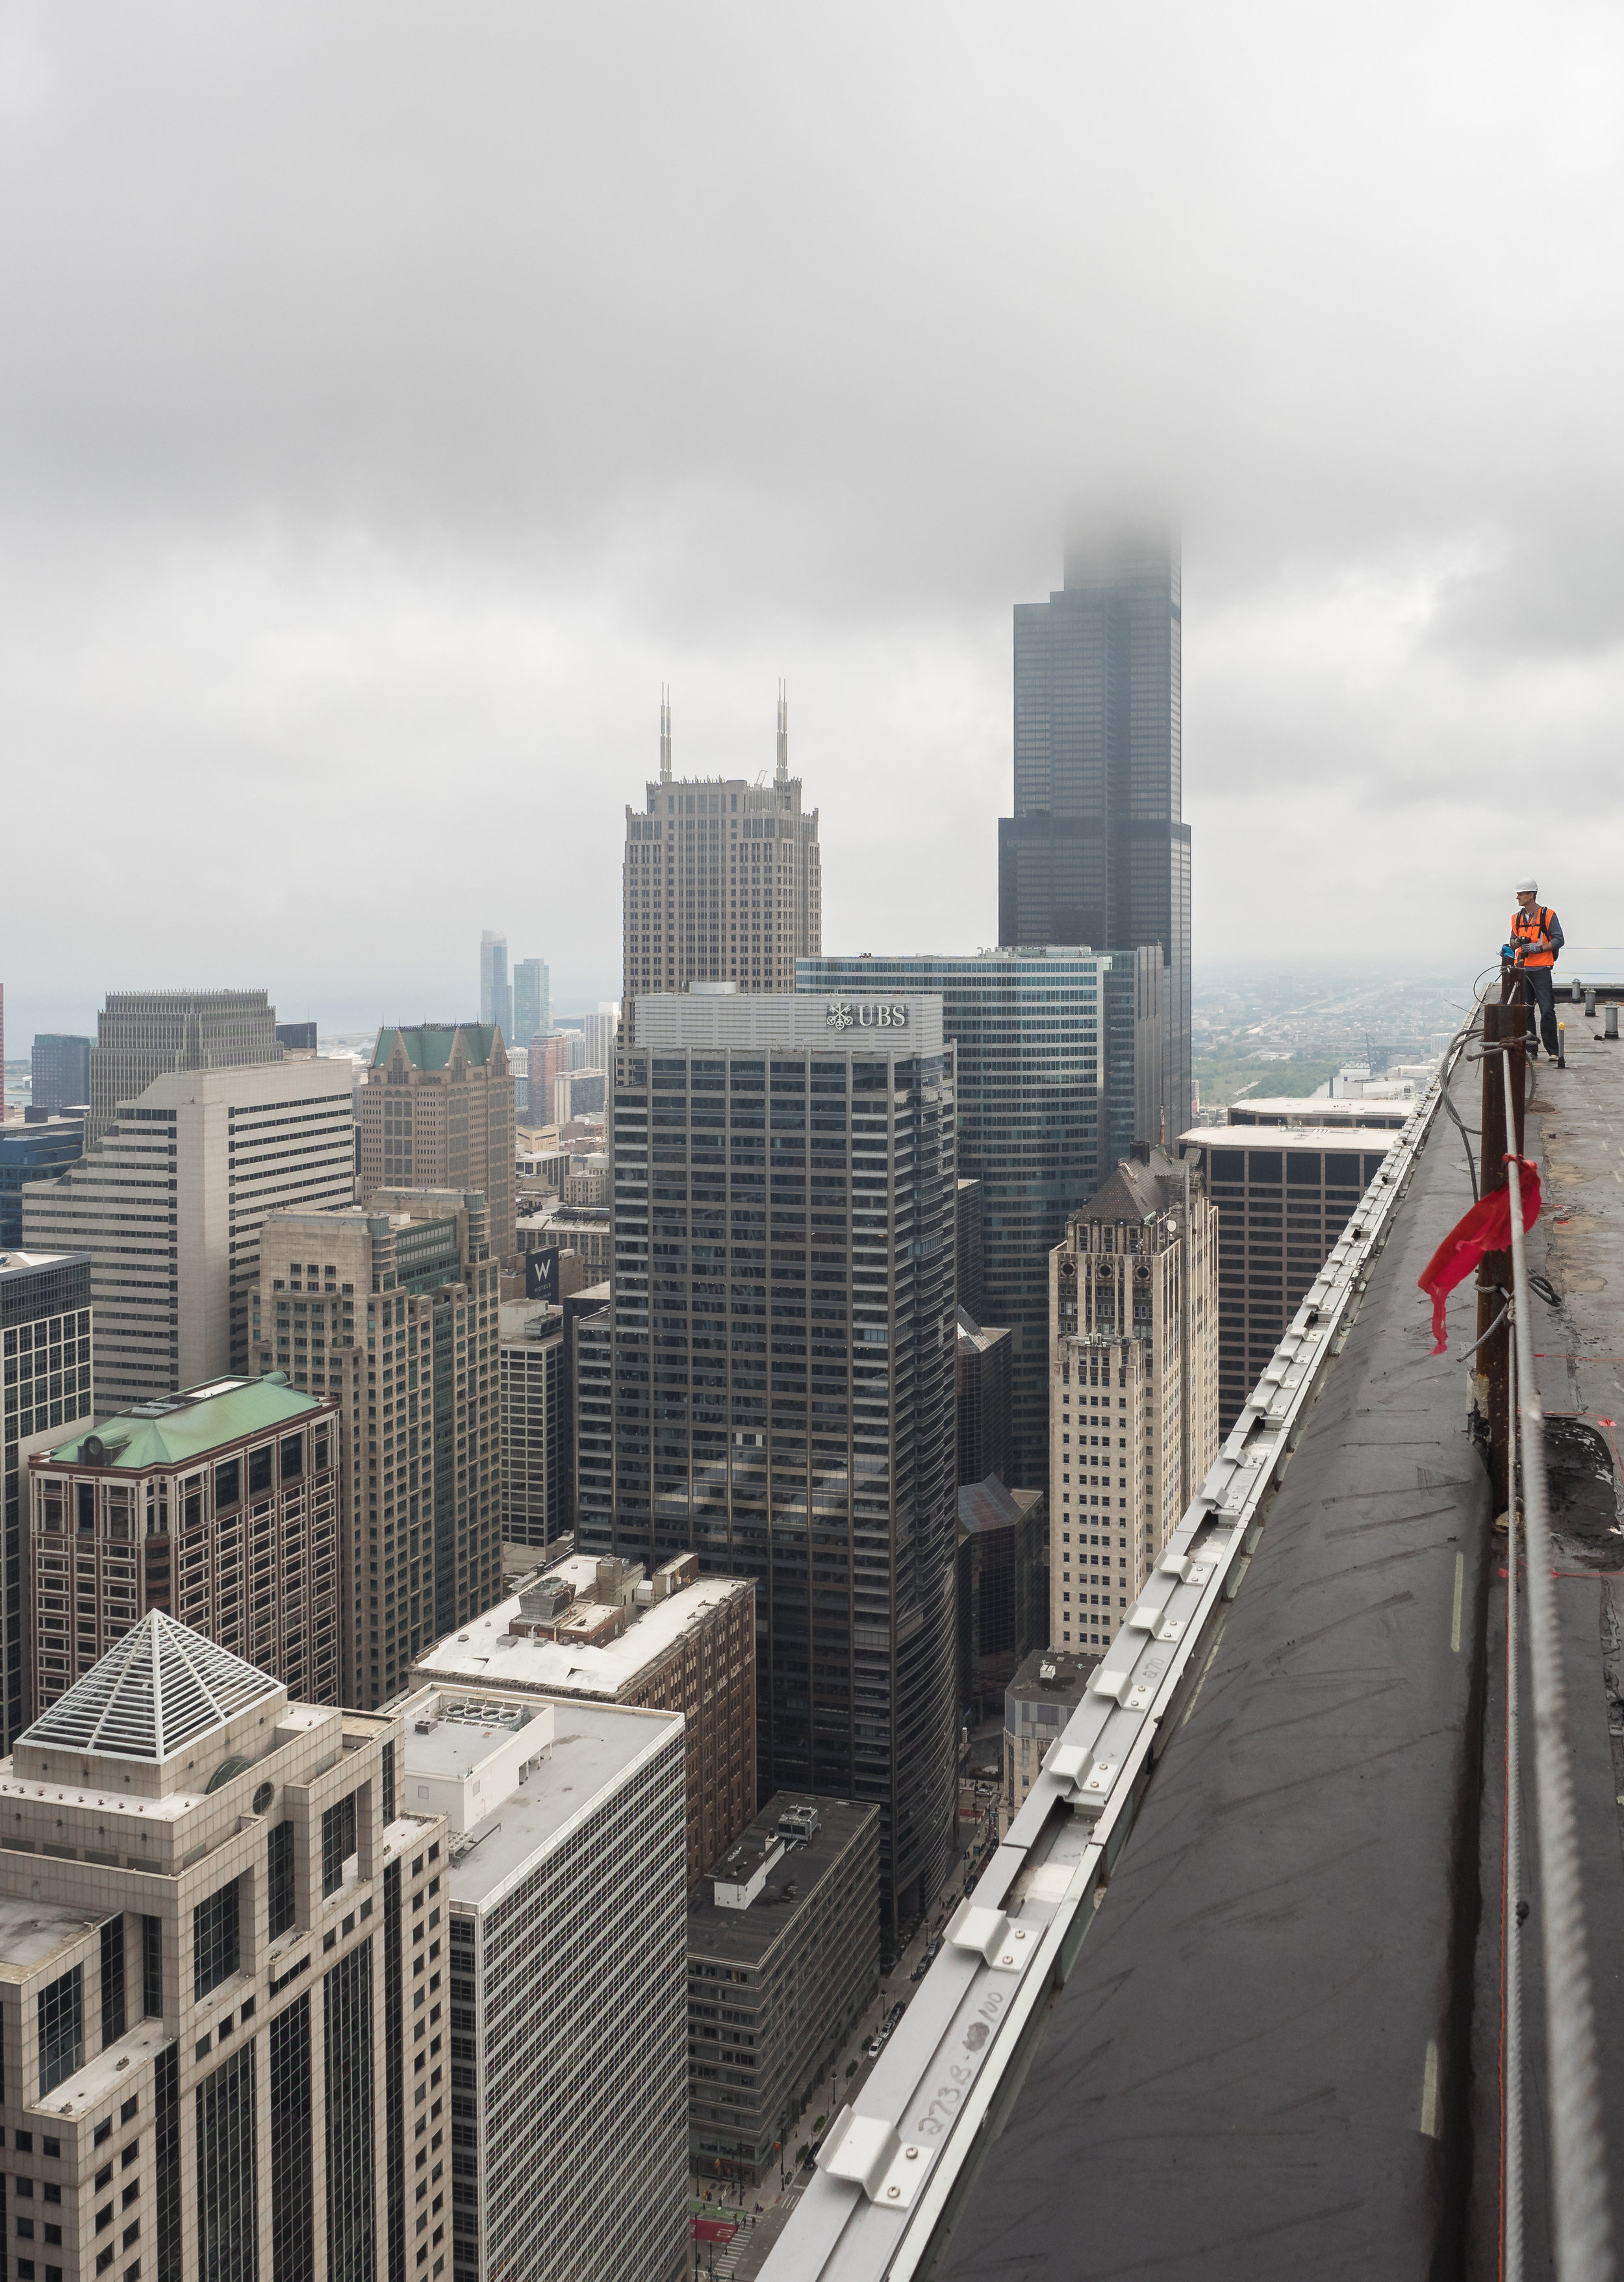 It was a pretty gloomy day so the view wasn't the best on the roof